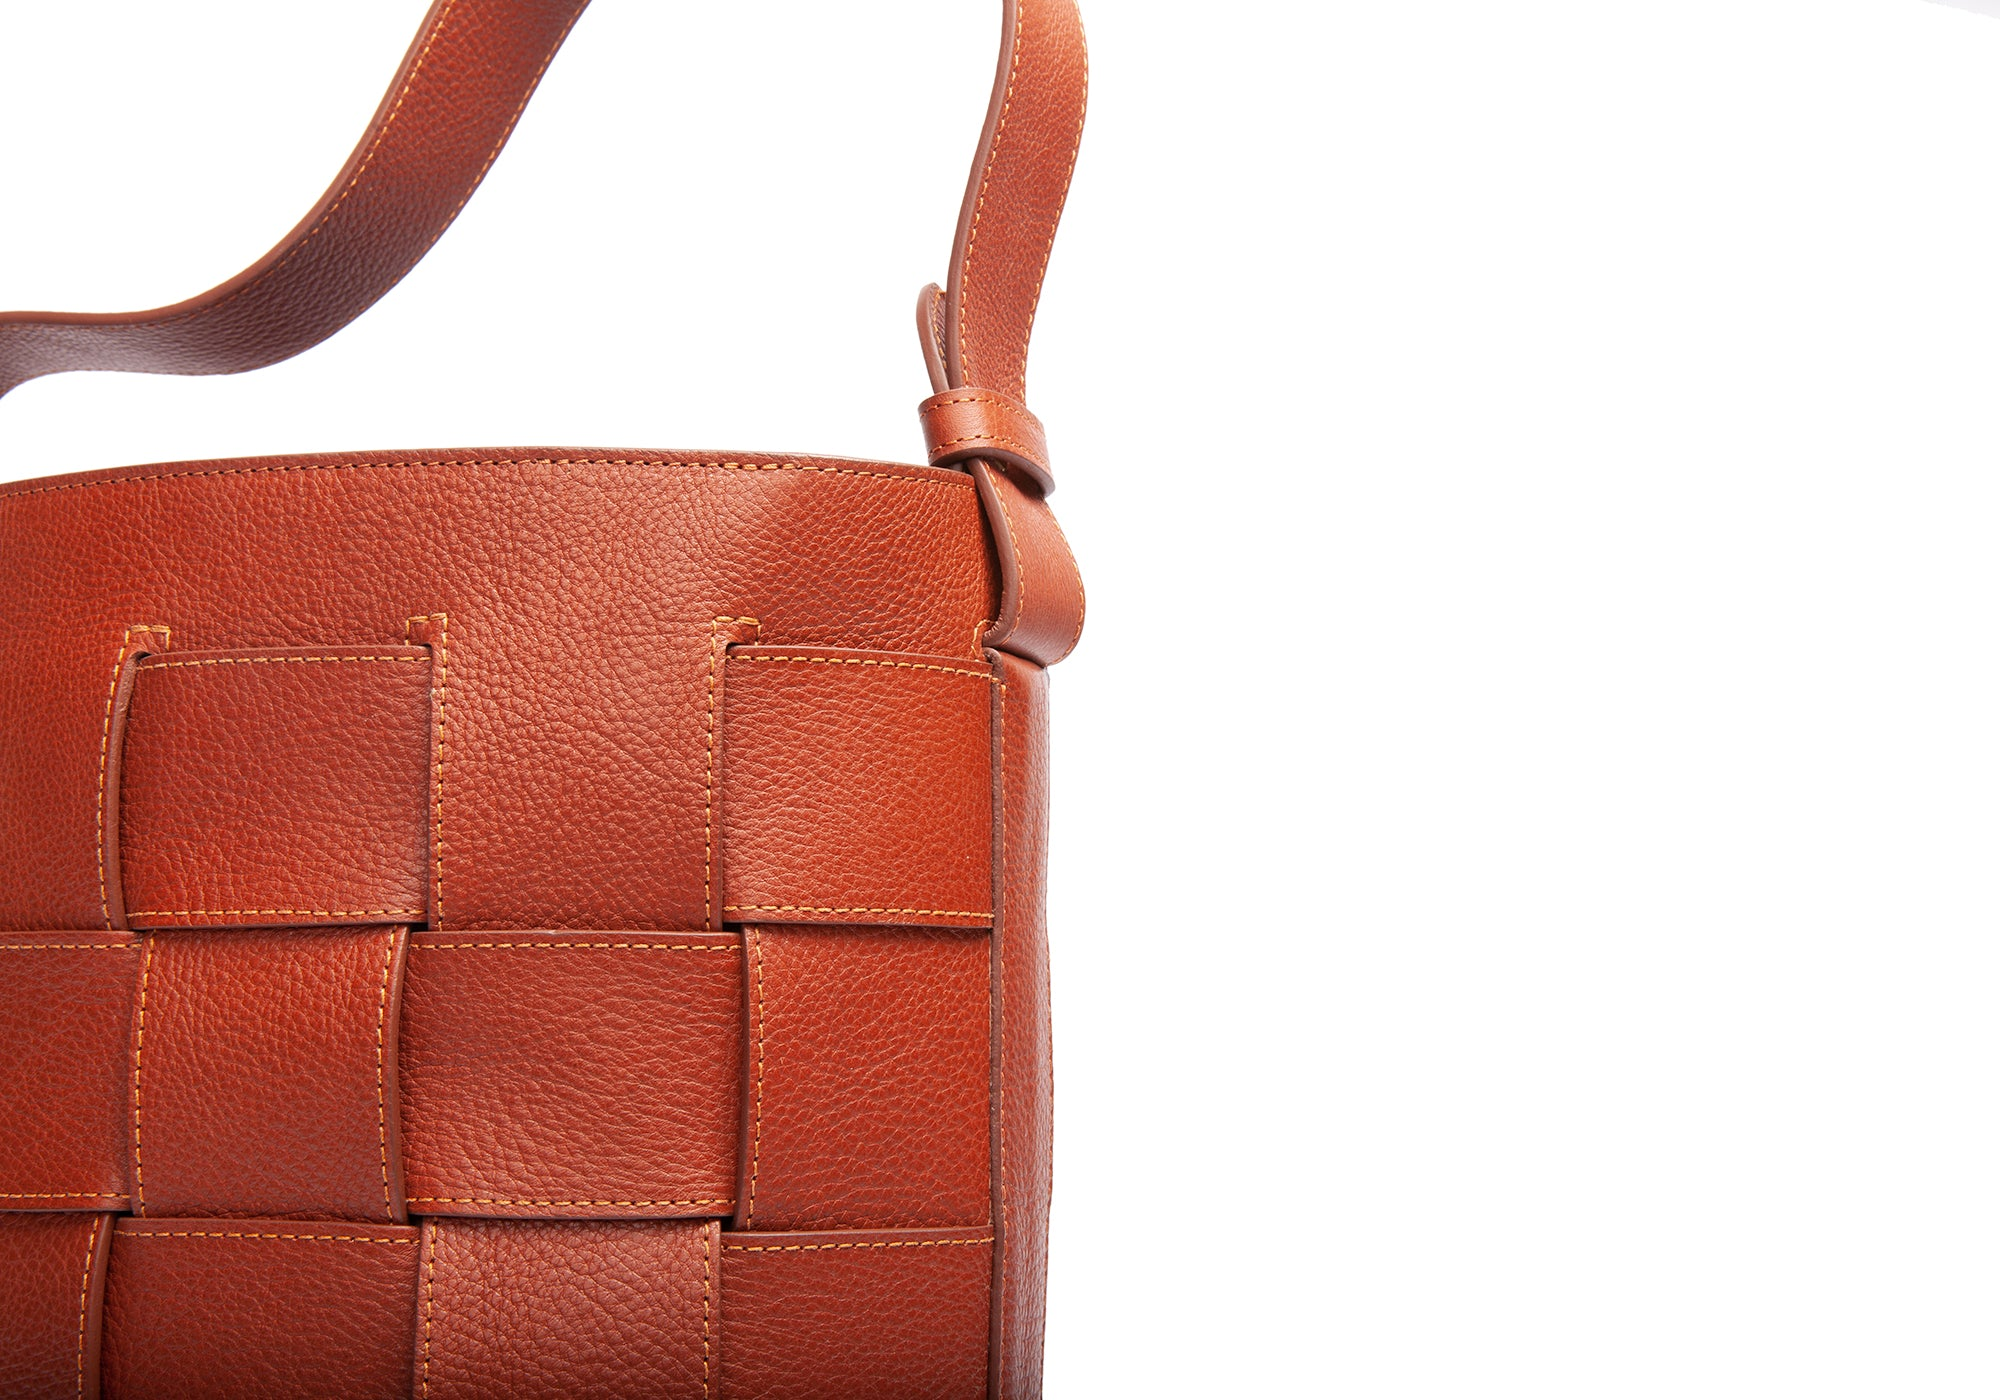 Woven Leather Bucket Shoulder Bag Saddle Tan